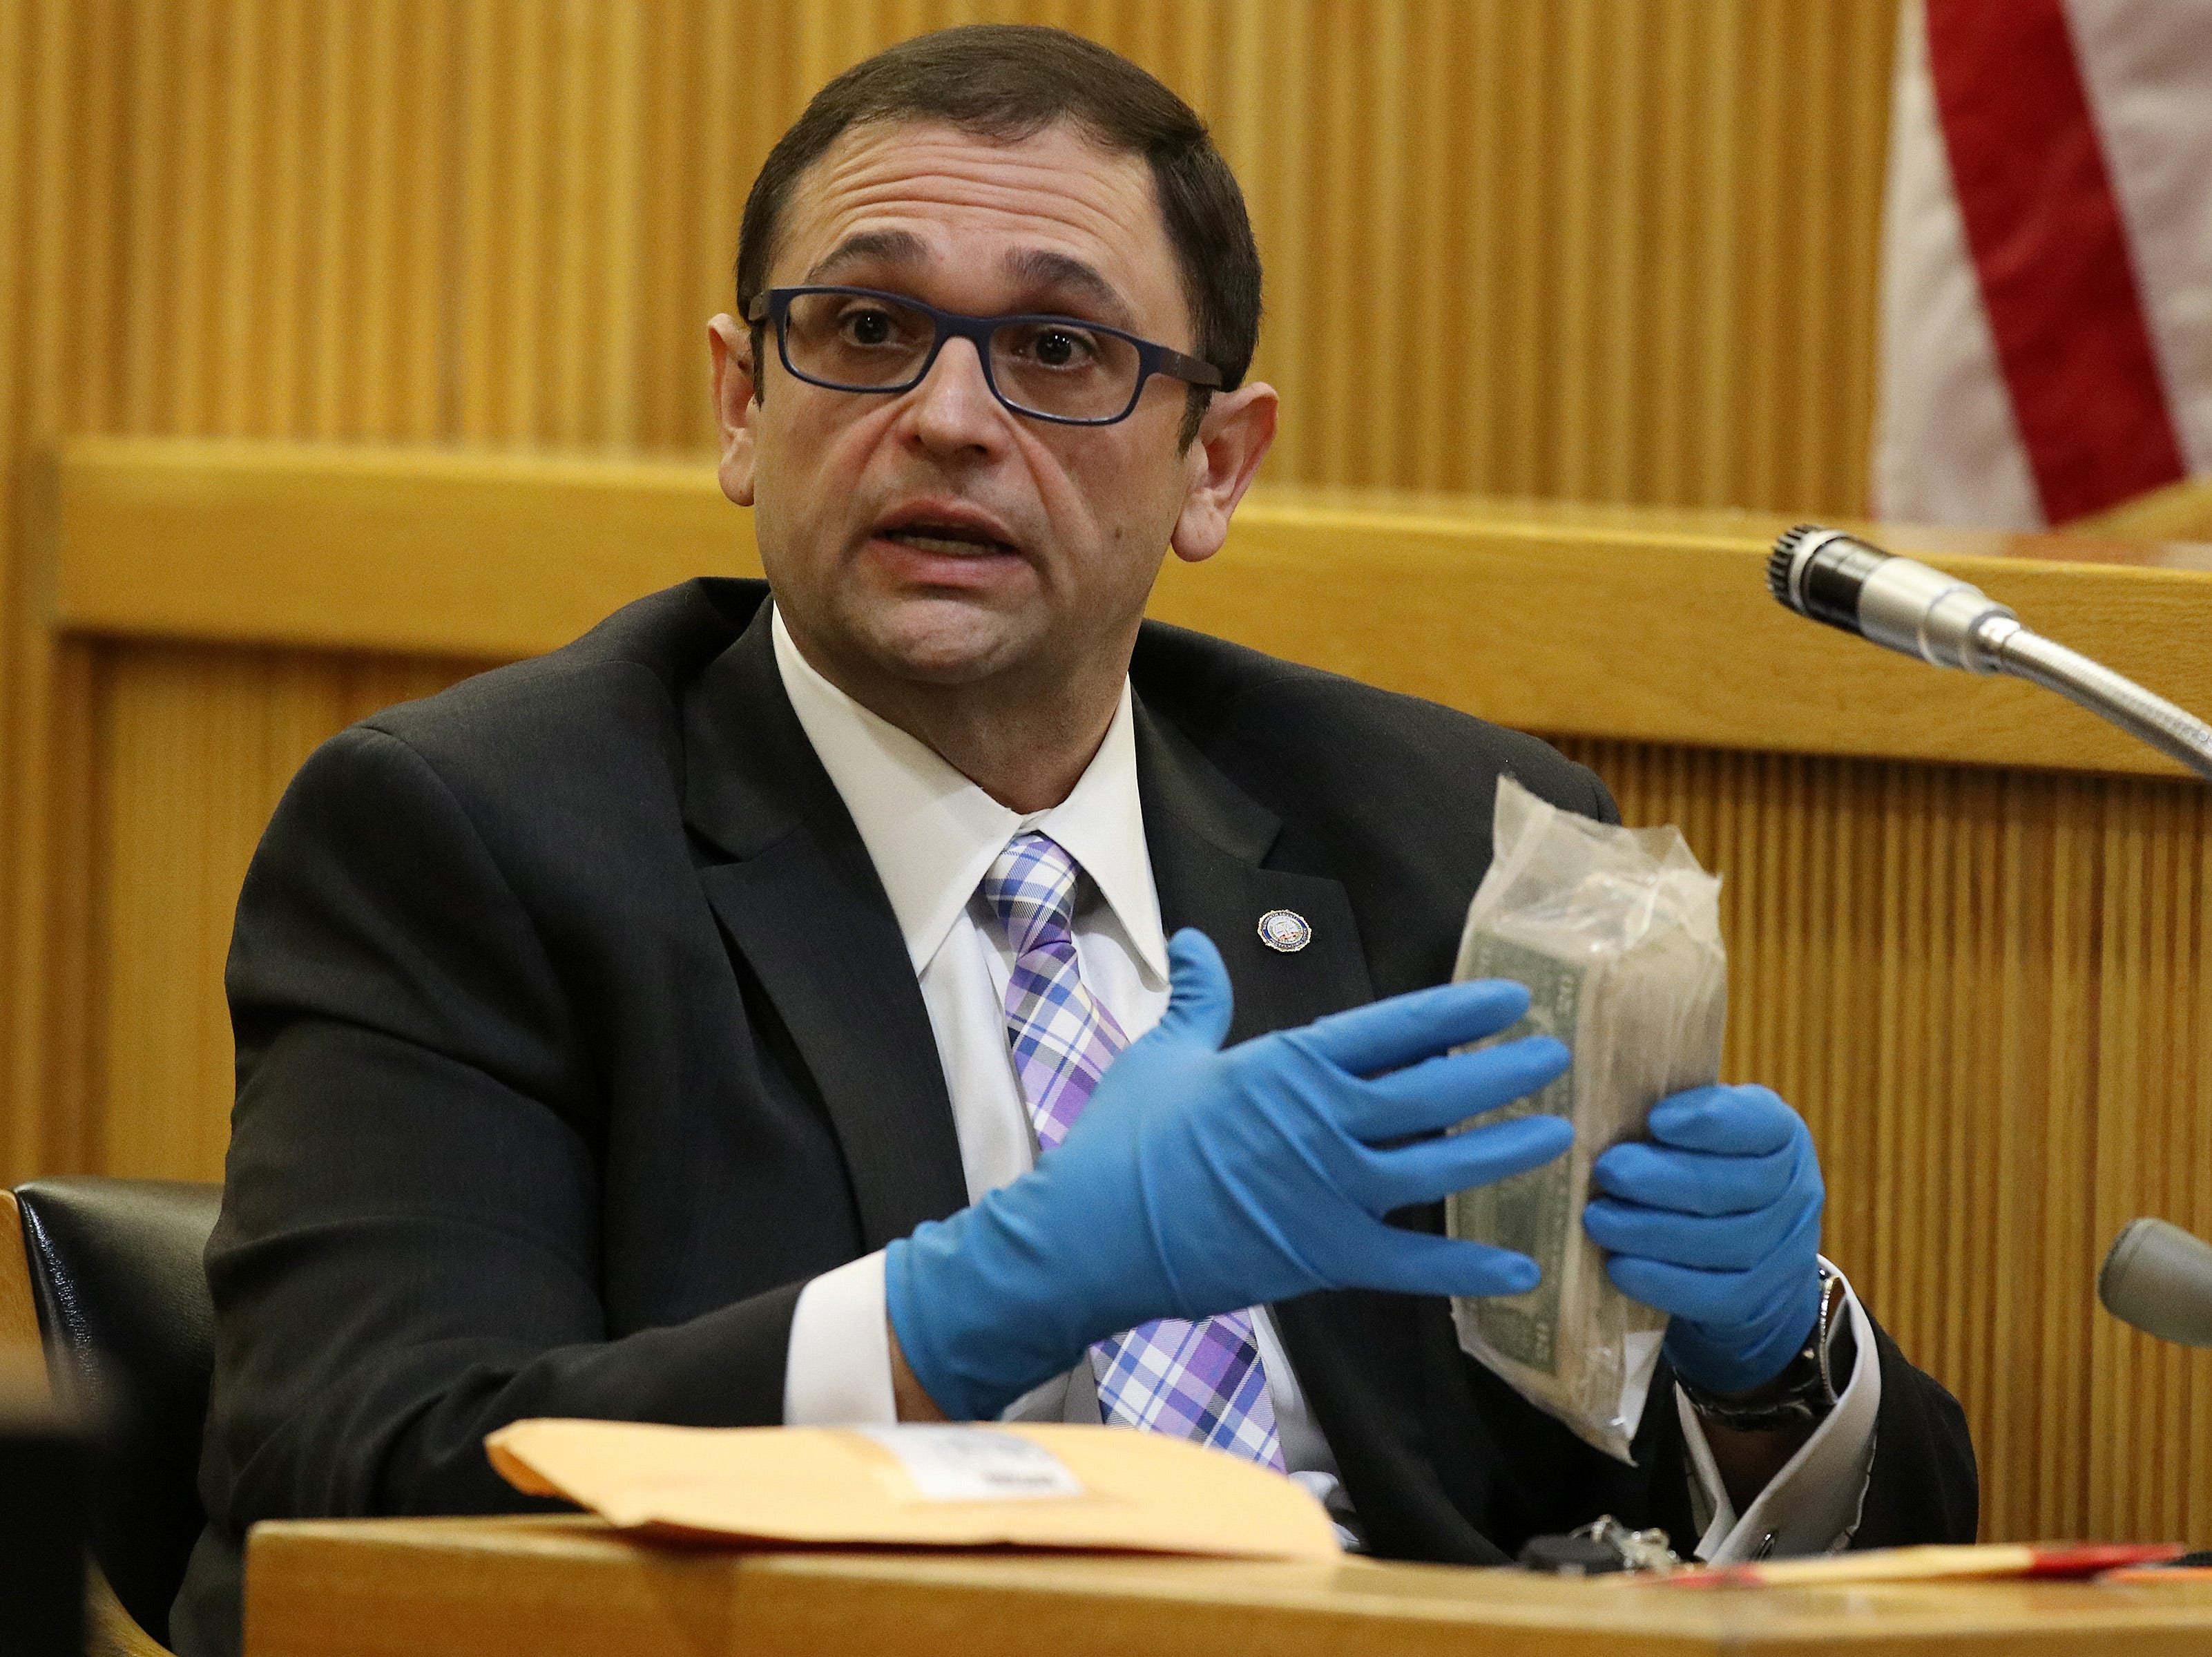 Detective Nicholas Cattelona of the Monmouth County Prosecutor's Office, identifies money found in a safe in Sandy Hook as he testifies during the trial of Liam McAtasney, who is charged with the murder of former high school classmate, Sarah Stern, before Superior Court Judge Richard W. English at the Monmouth County Courthouse in Freehold, NJ Wednesday, February 6, 2019.